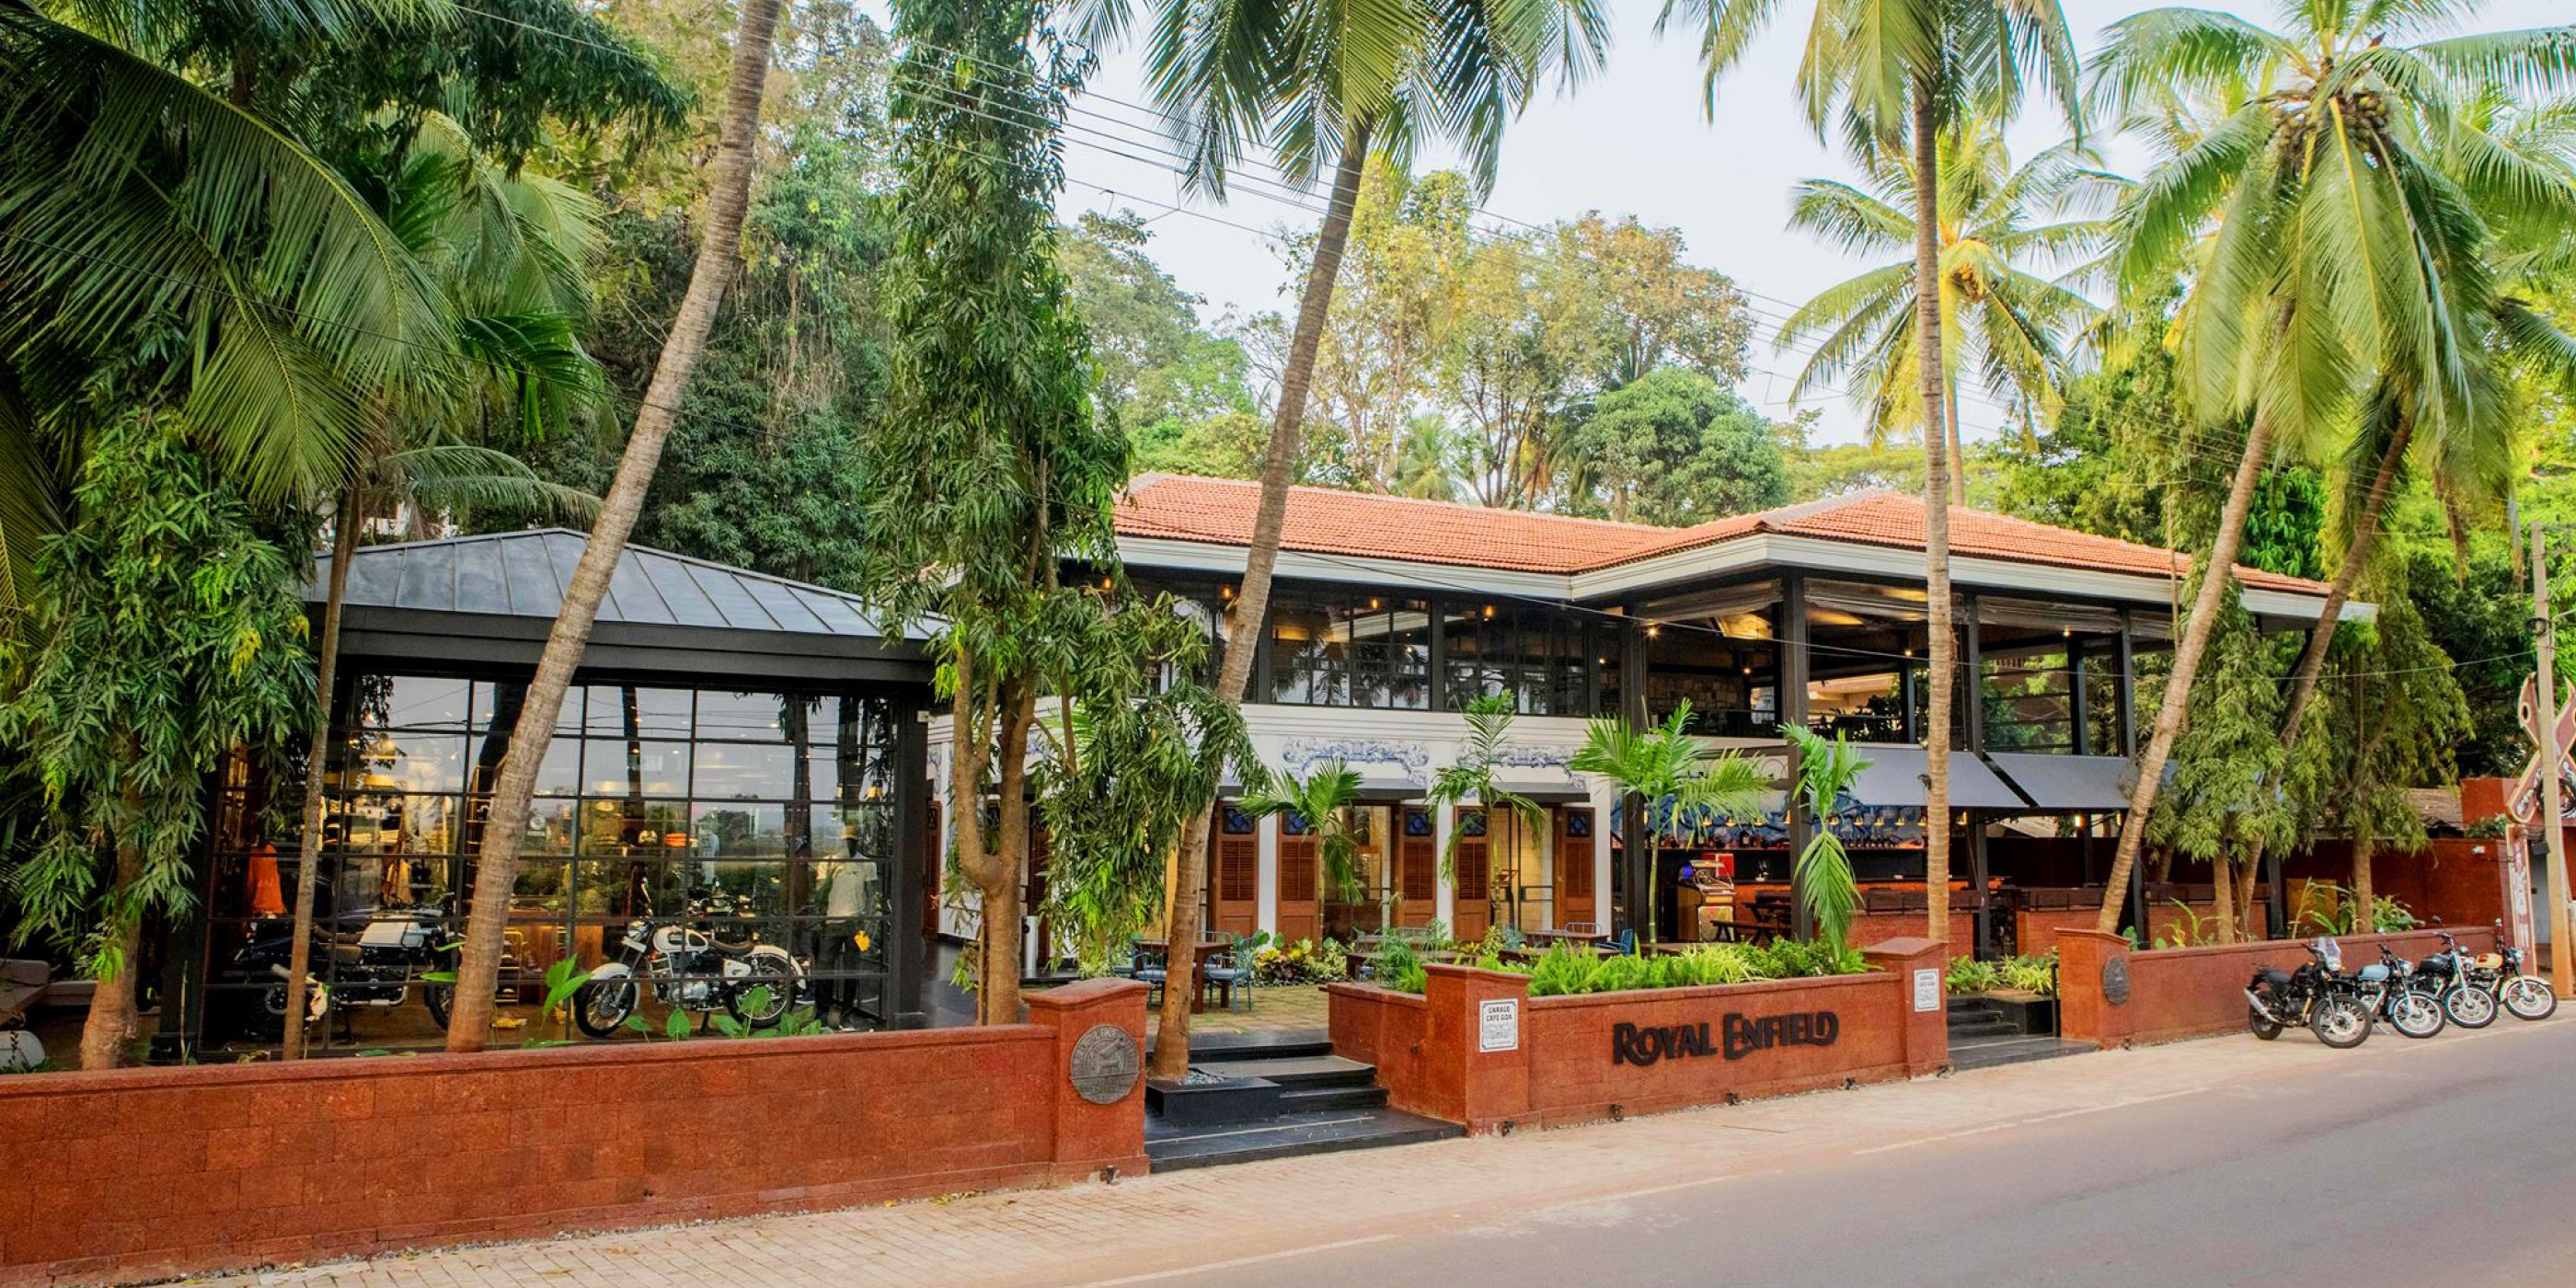 Royal Enfield Garage Café